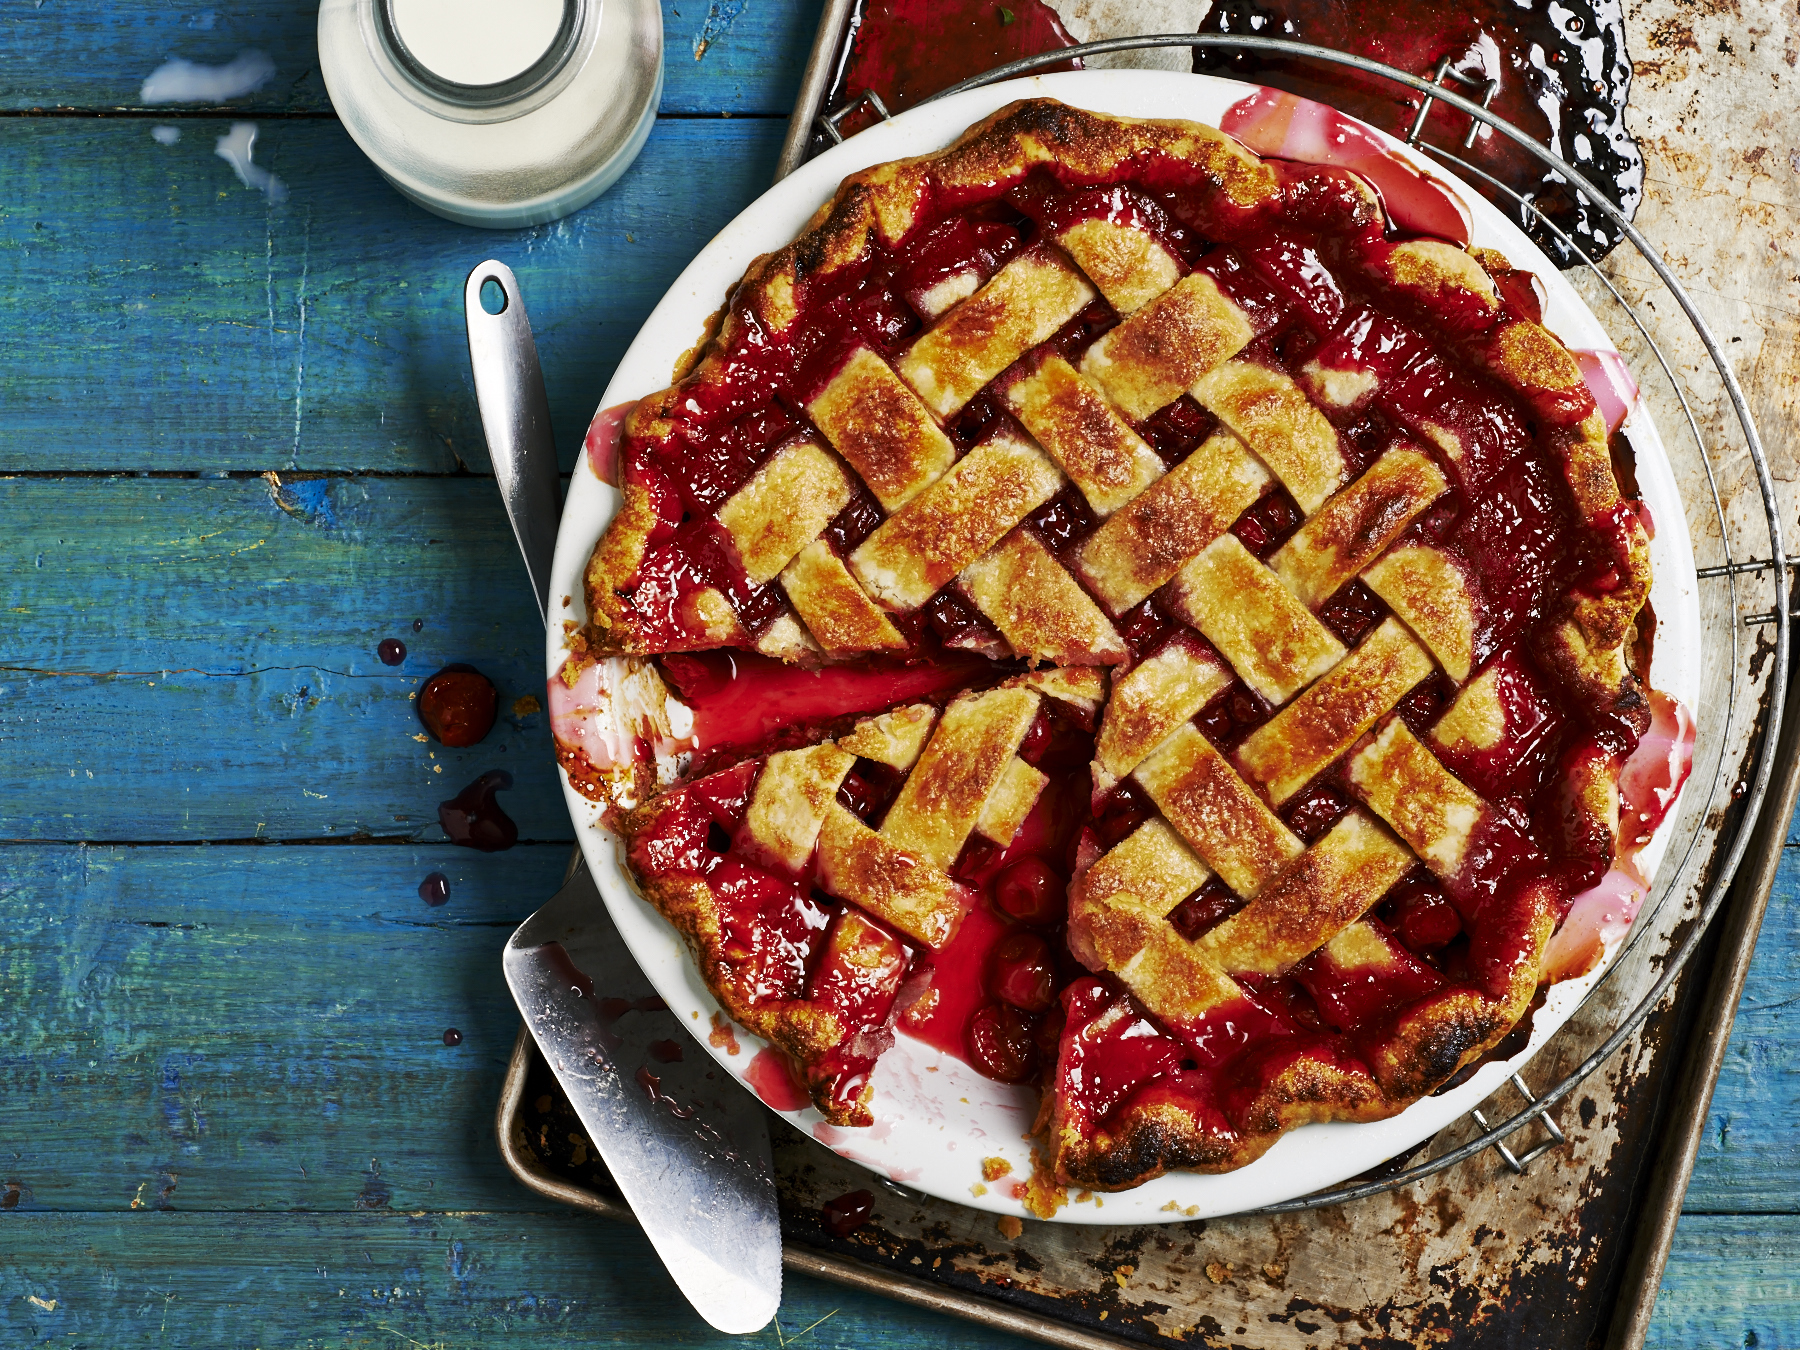 DPS_Cherry_Pie_Sliced_Mess_4039.jpg